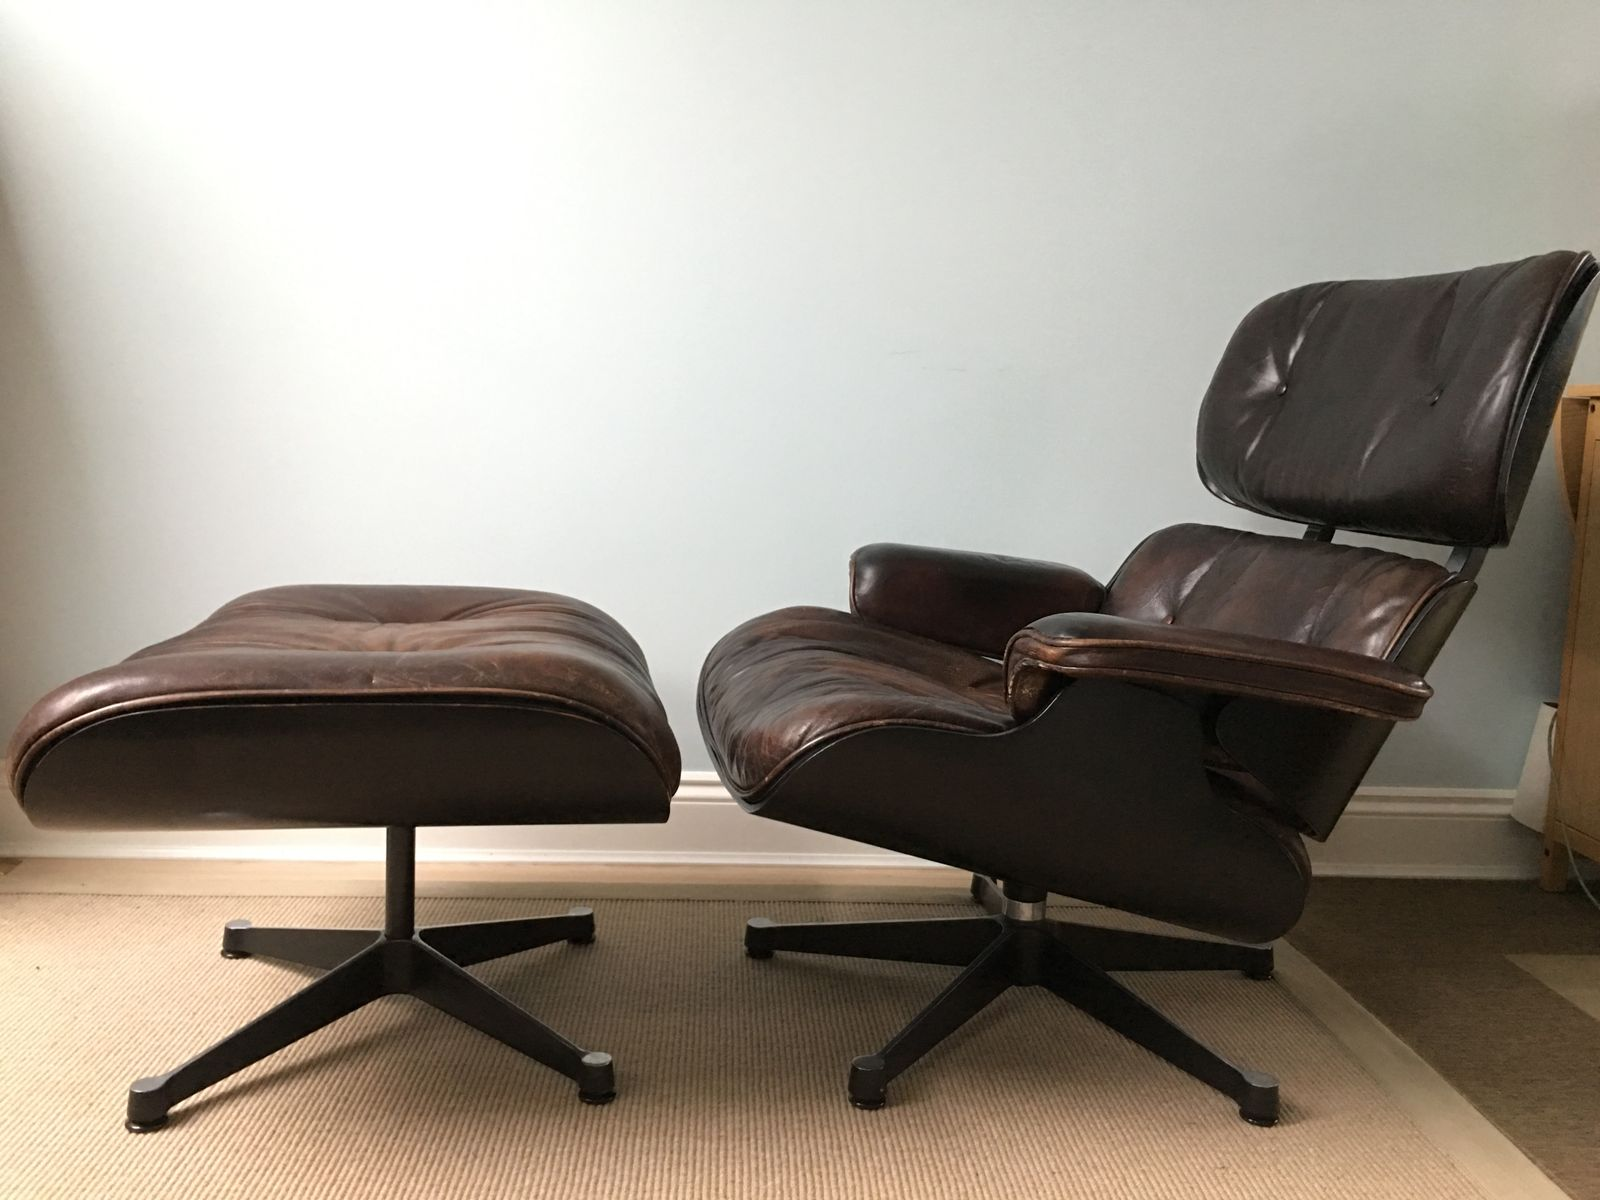 vintage 670 lounger and 671 ottoman by charles and ray. Black Bedroom Furniture Sets. Home Design Ideas